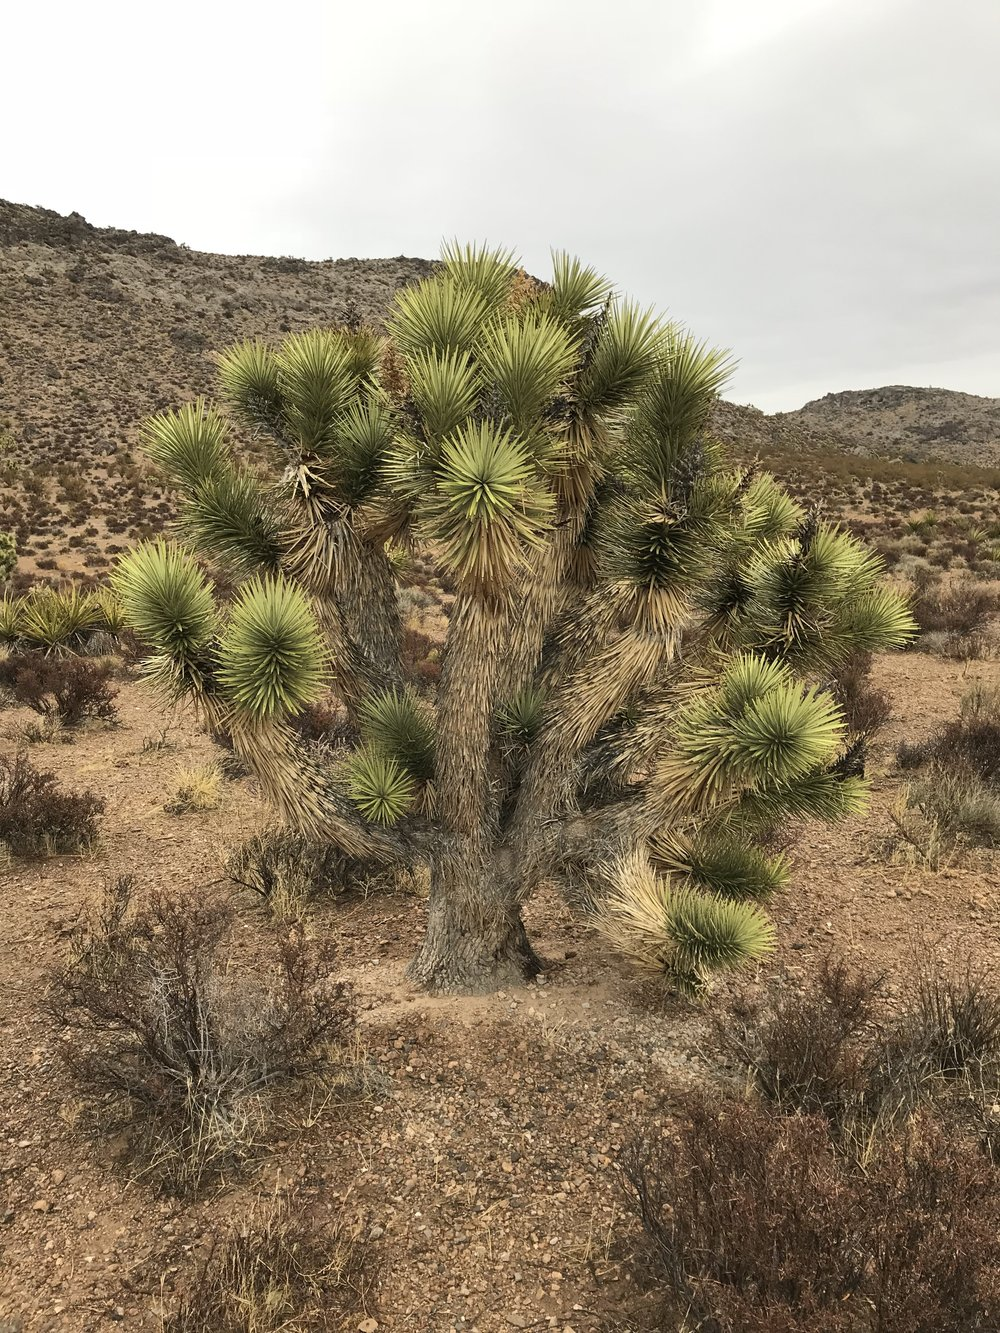 The Willow Springs Loop offers a relatively flat hiking trail that will allow you wonderful views of cacti like this!  For the more adventerous folks there is a mountain bike trail option to ride!